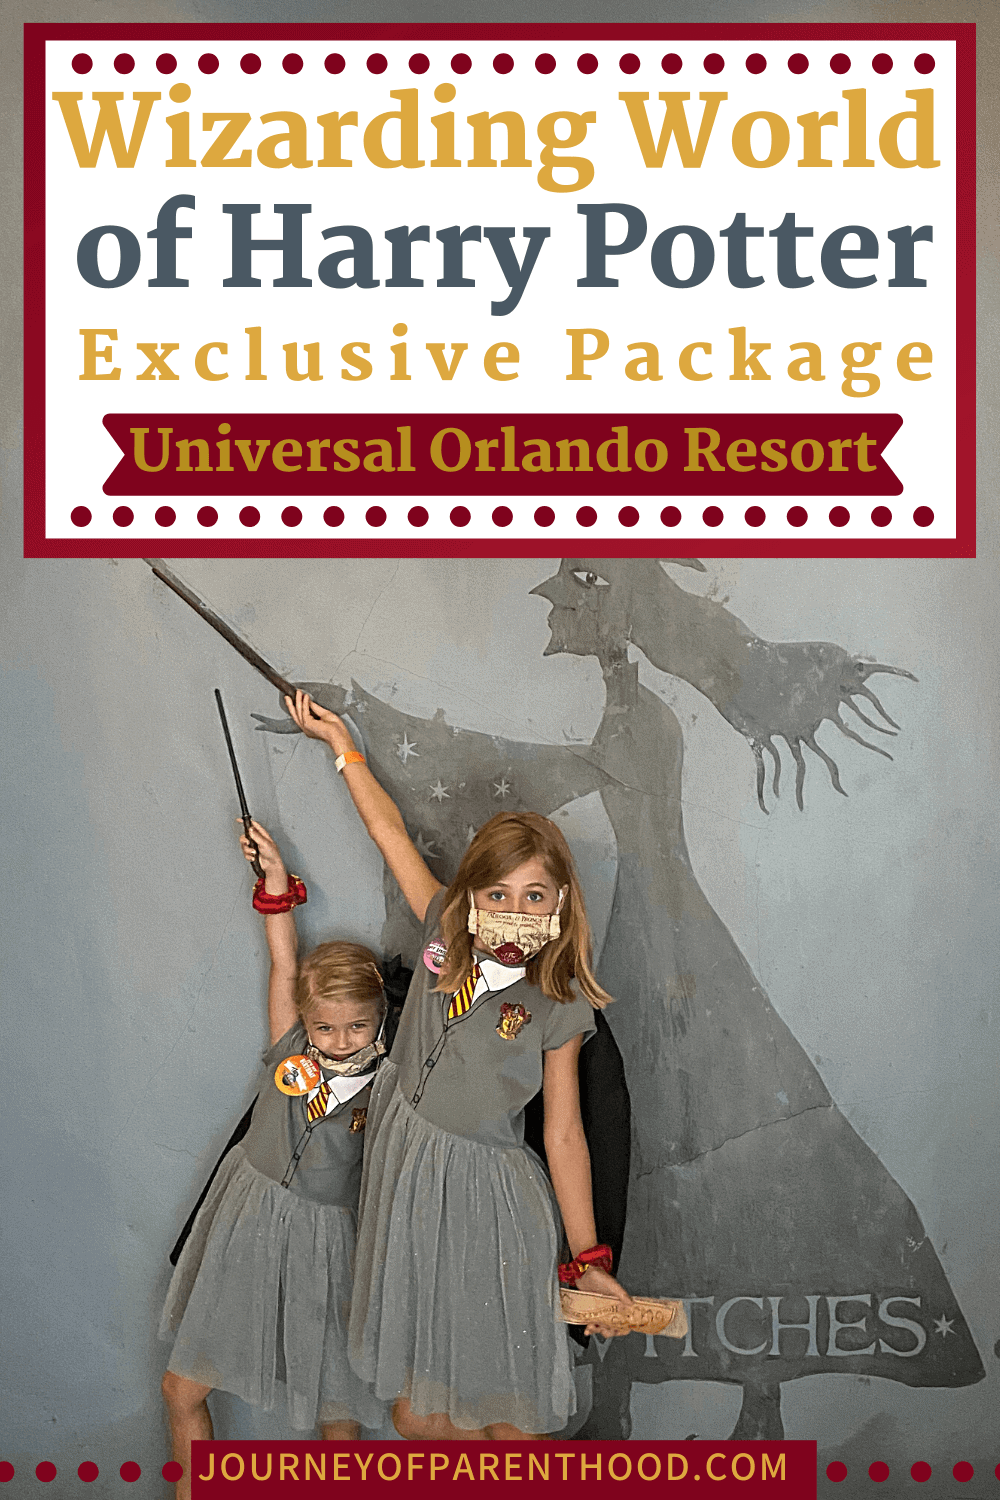 wizarding world of Harry Potter exclusive package at Universal Orlando Resort